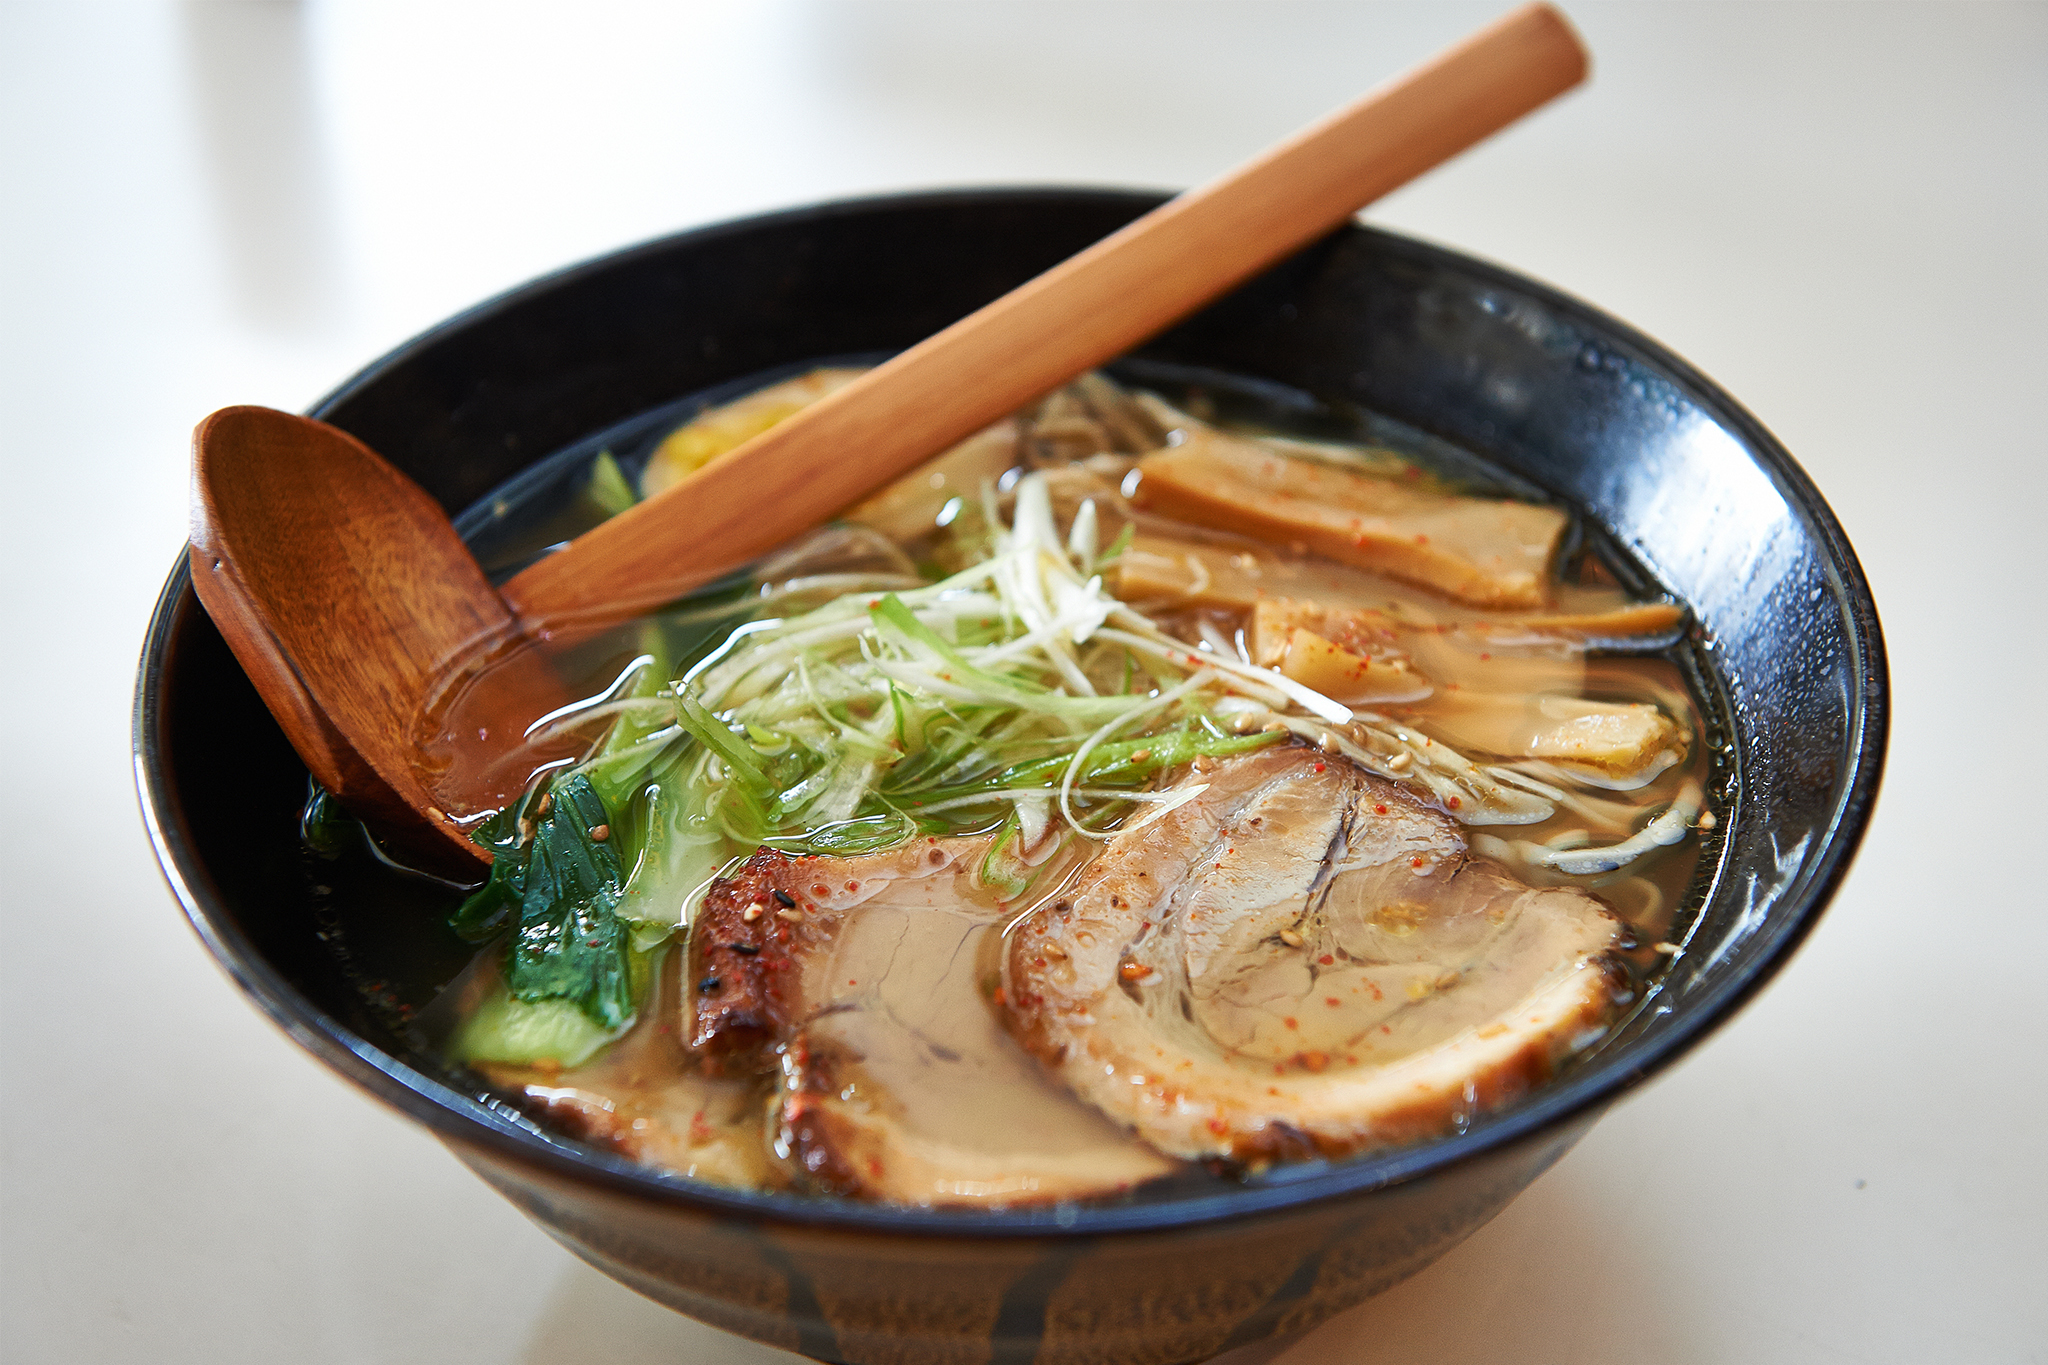 Ramen noodles: Get to know eight traditional and new styles (2013)